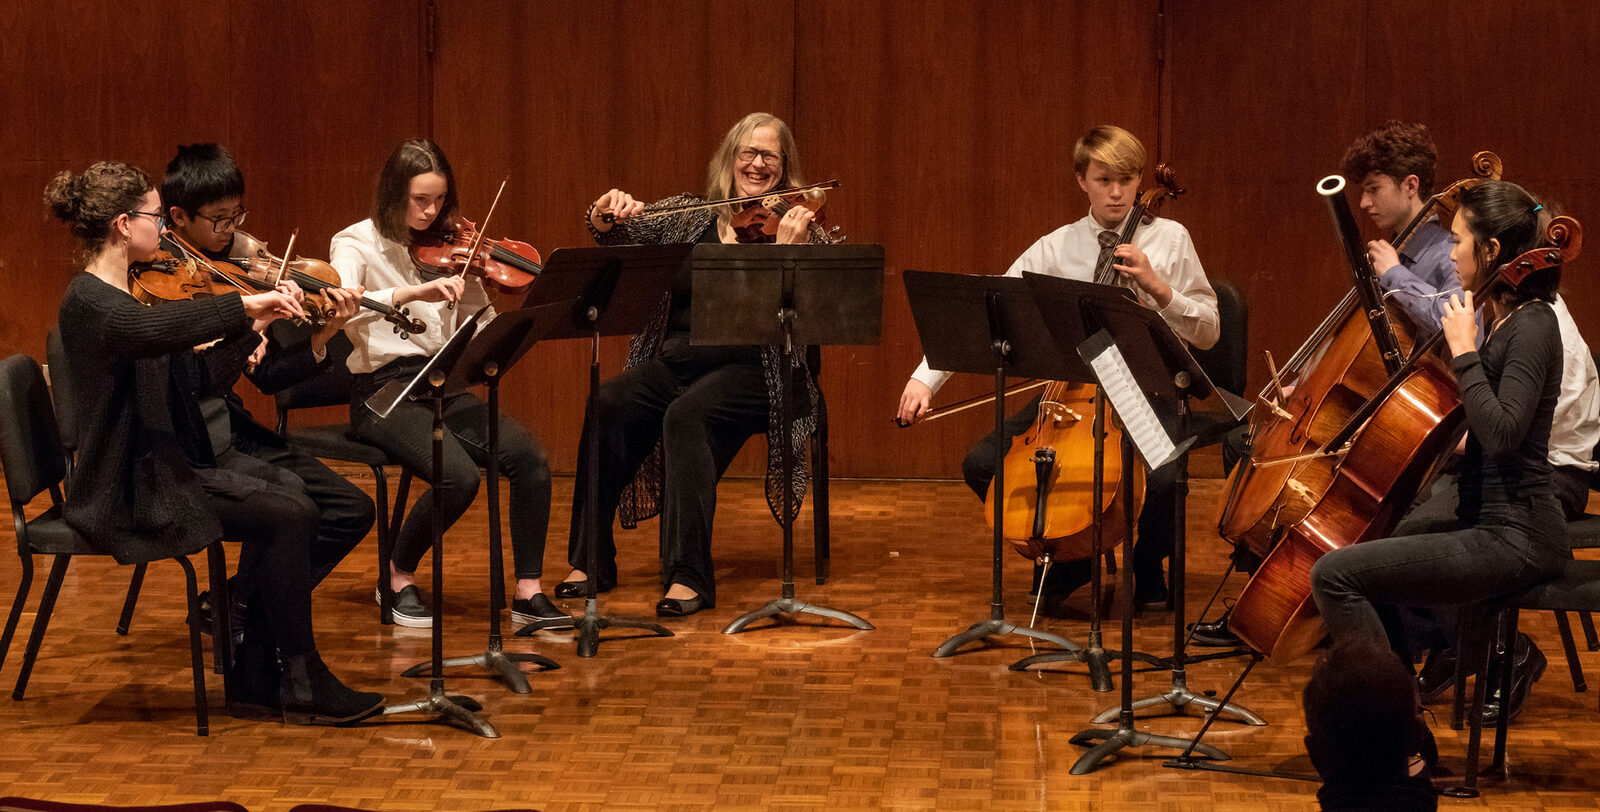 Chamber ensemble students and their instructor perform onstage during a recital. They play a variety of string and wind instruments.